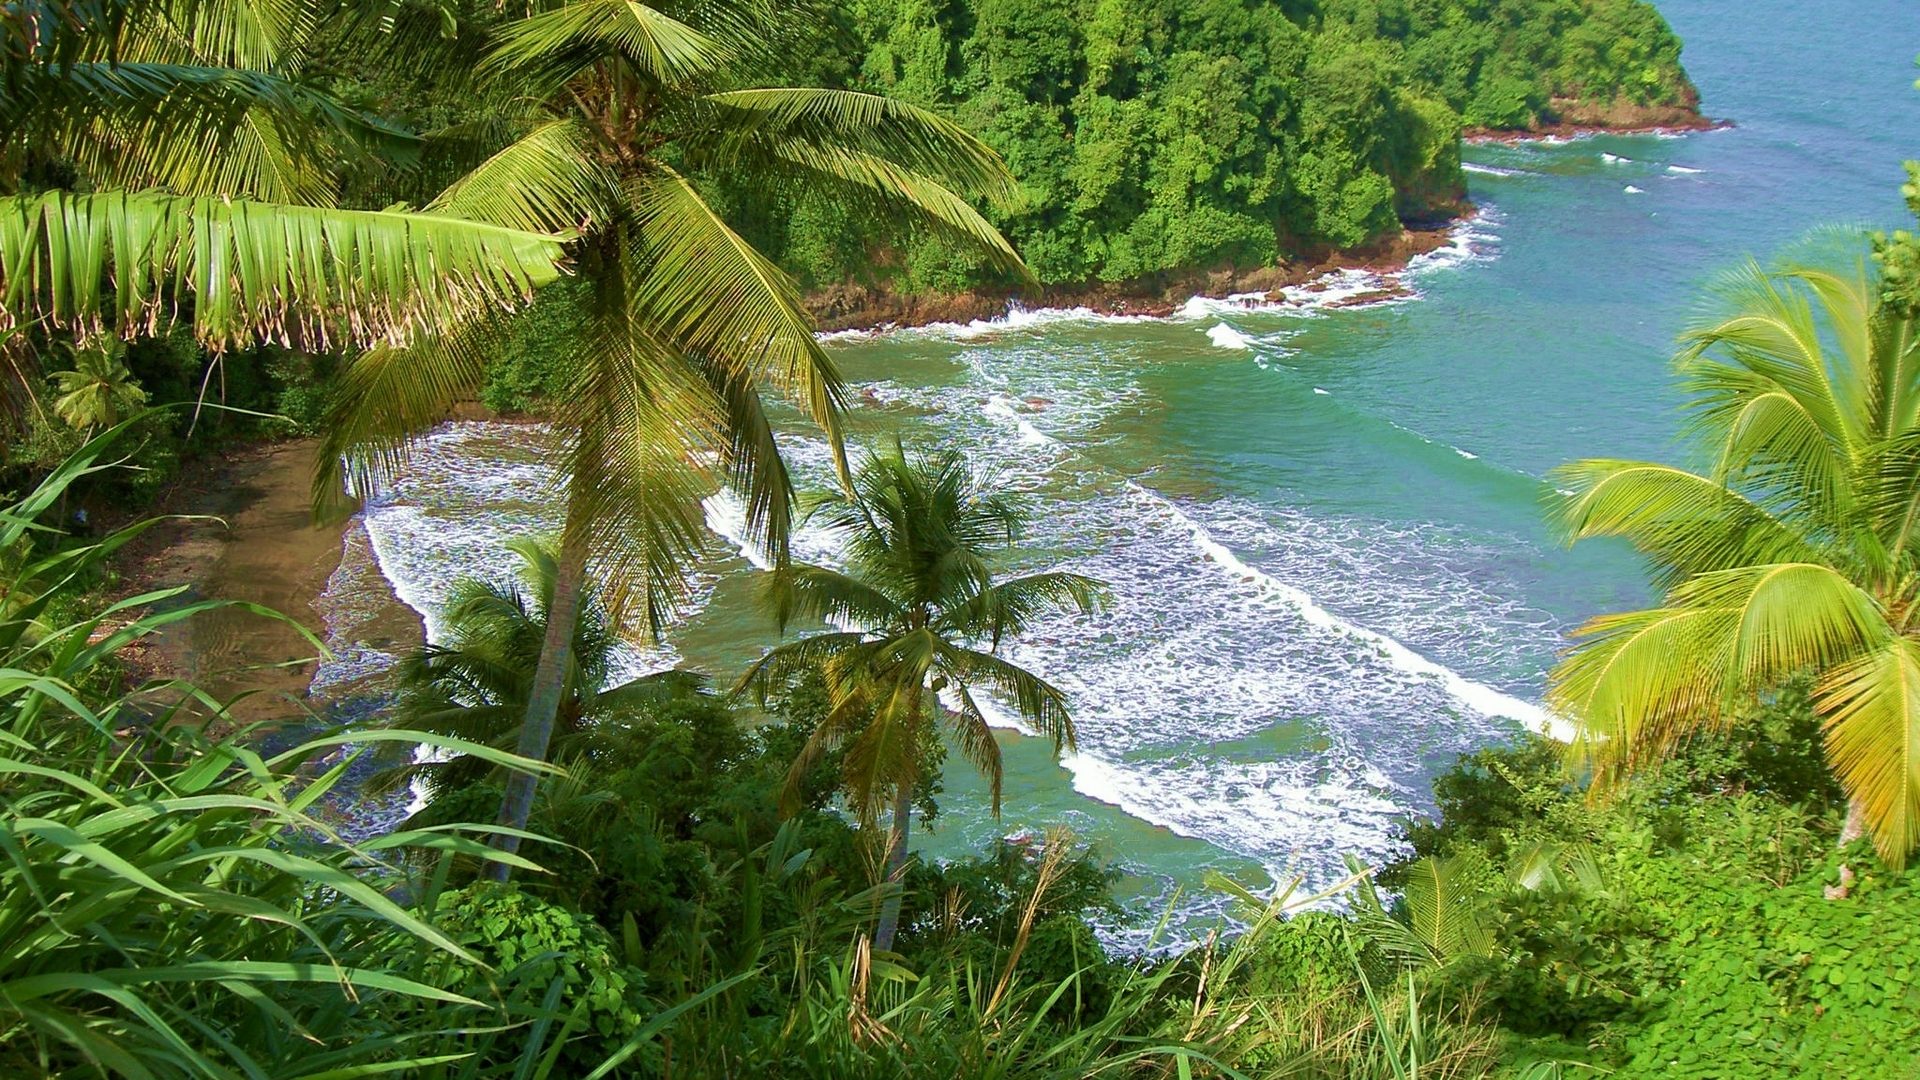 Hd Tropical Island Beach Paradise Wallpapers And Backgrounds: Exotic Islands Wallpapers